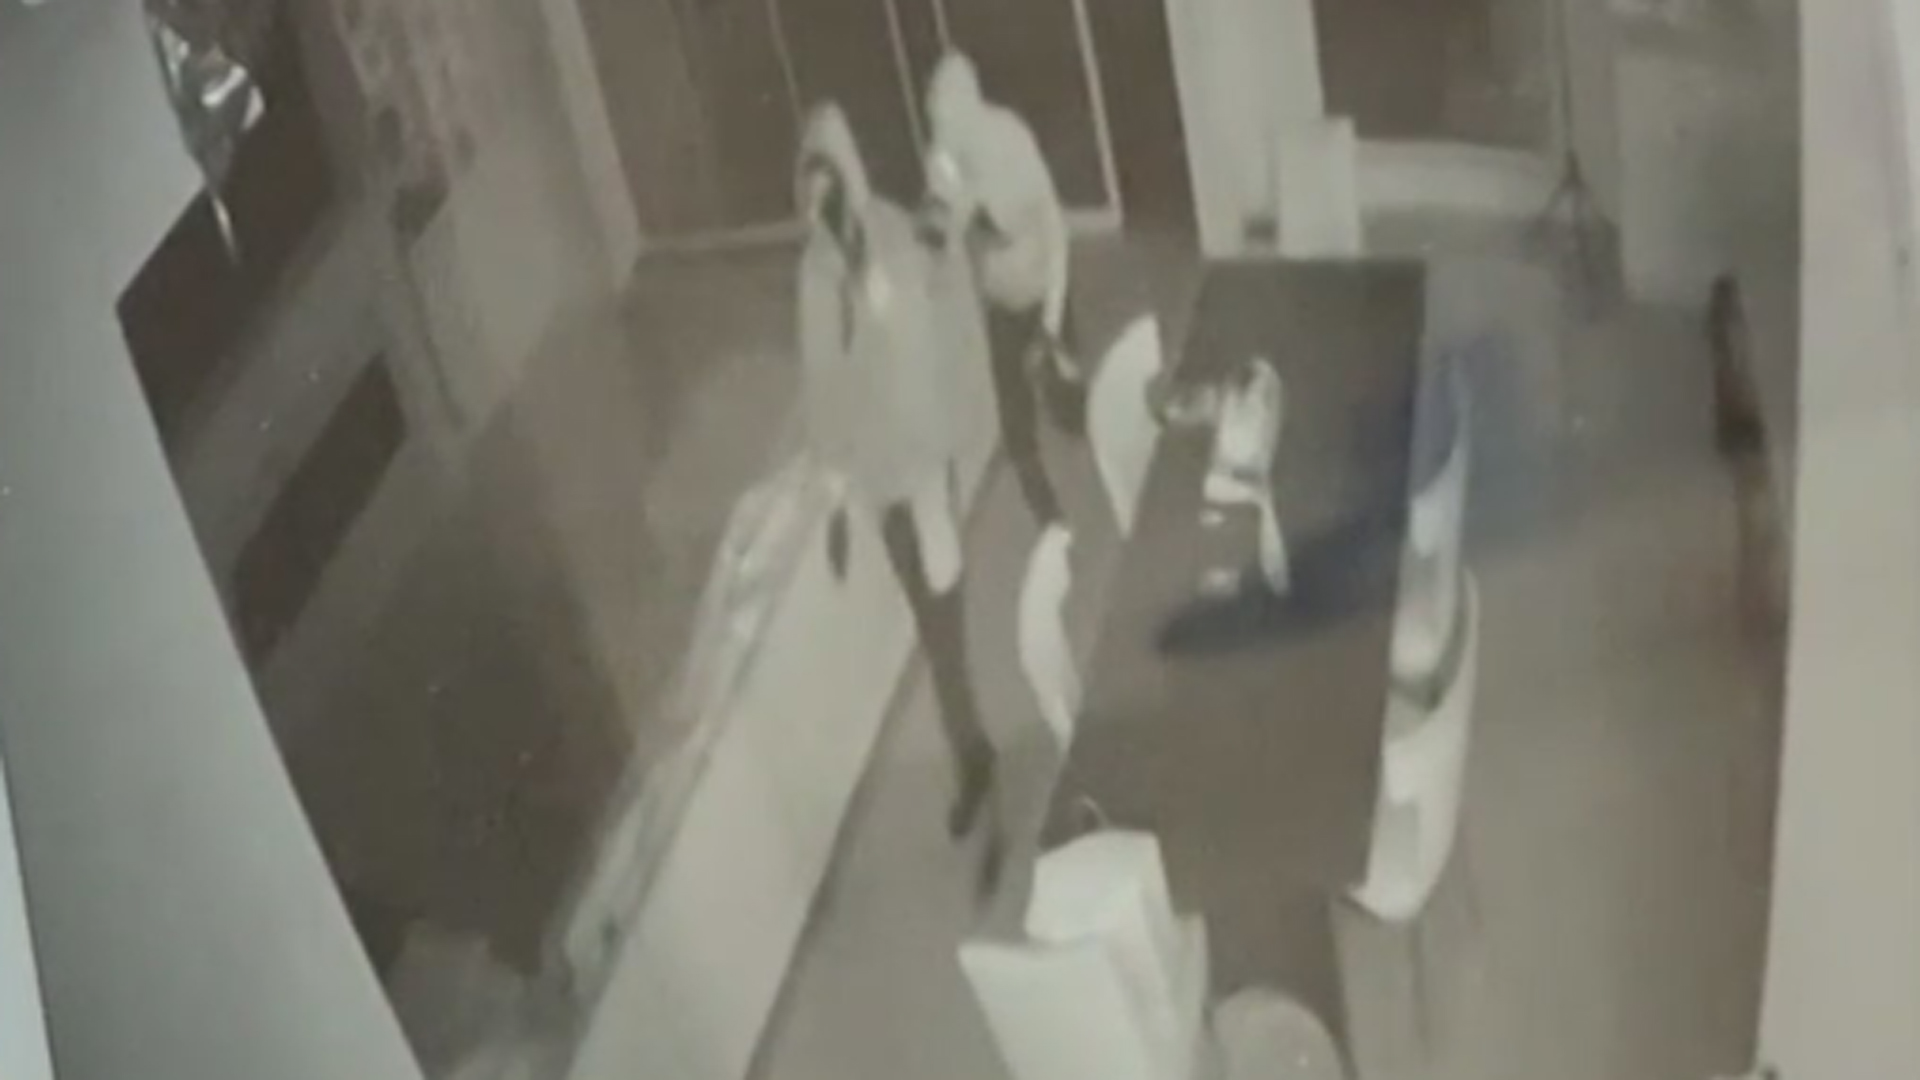 Video provided by activist Najee Ali on July 30, 2021 shows a residential burglary in Van Nuys.